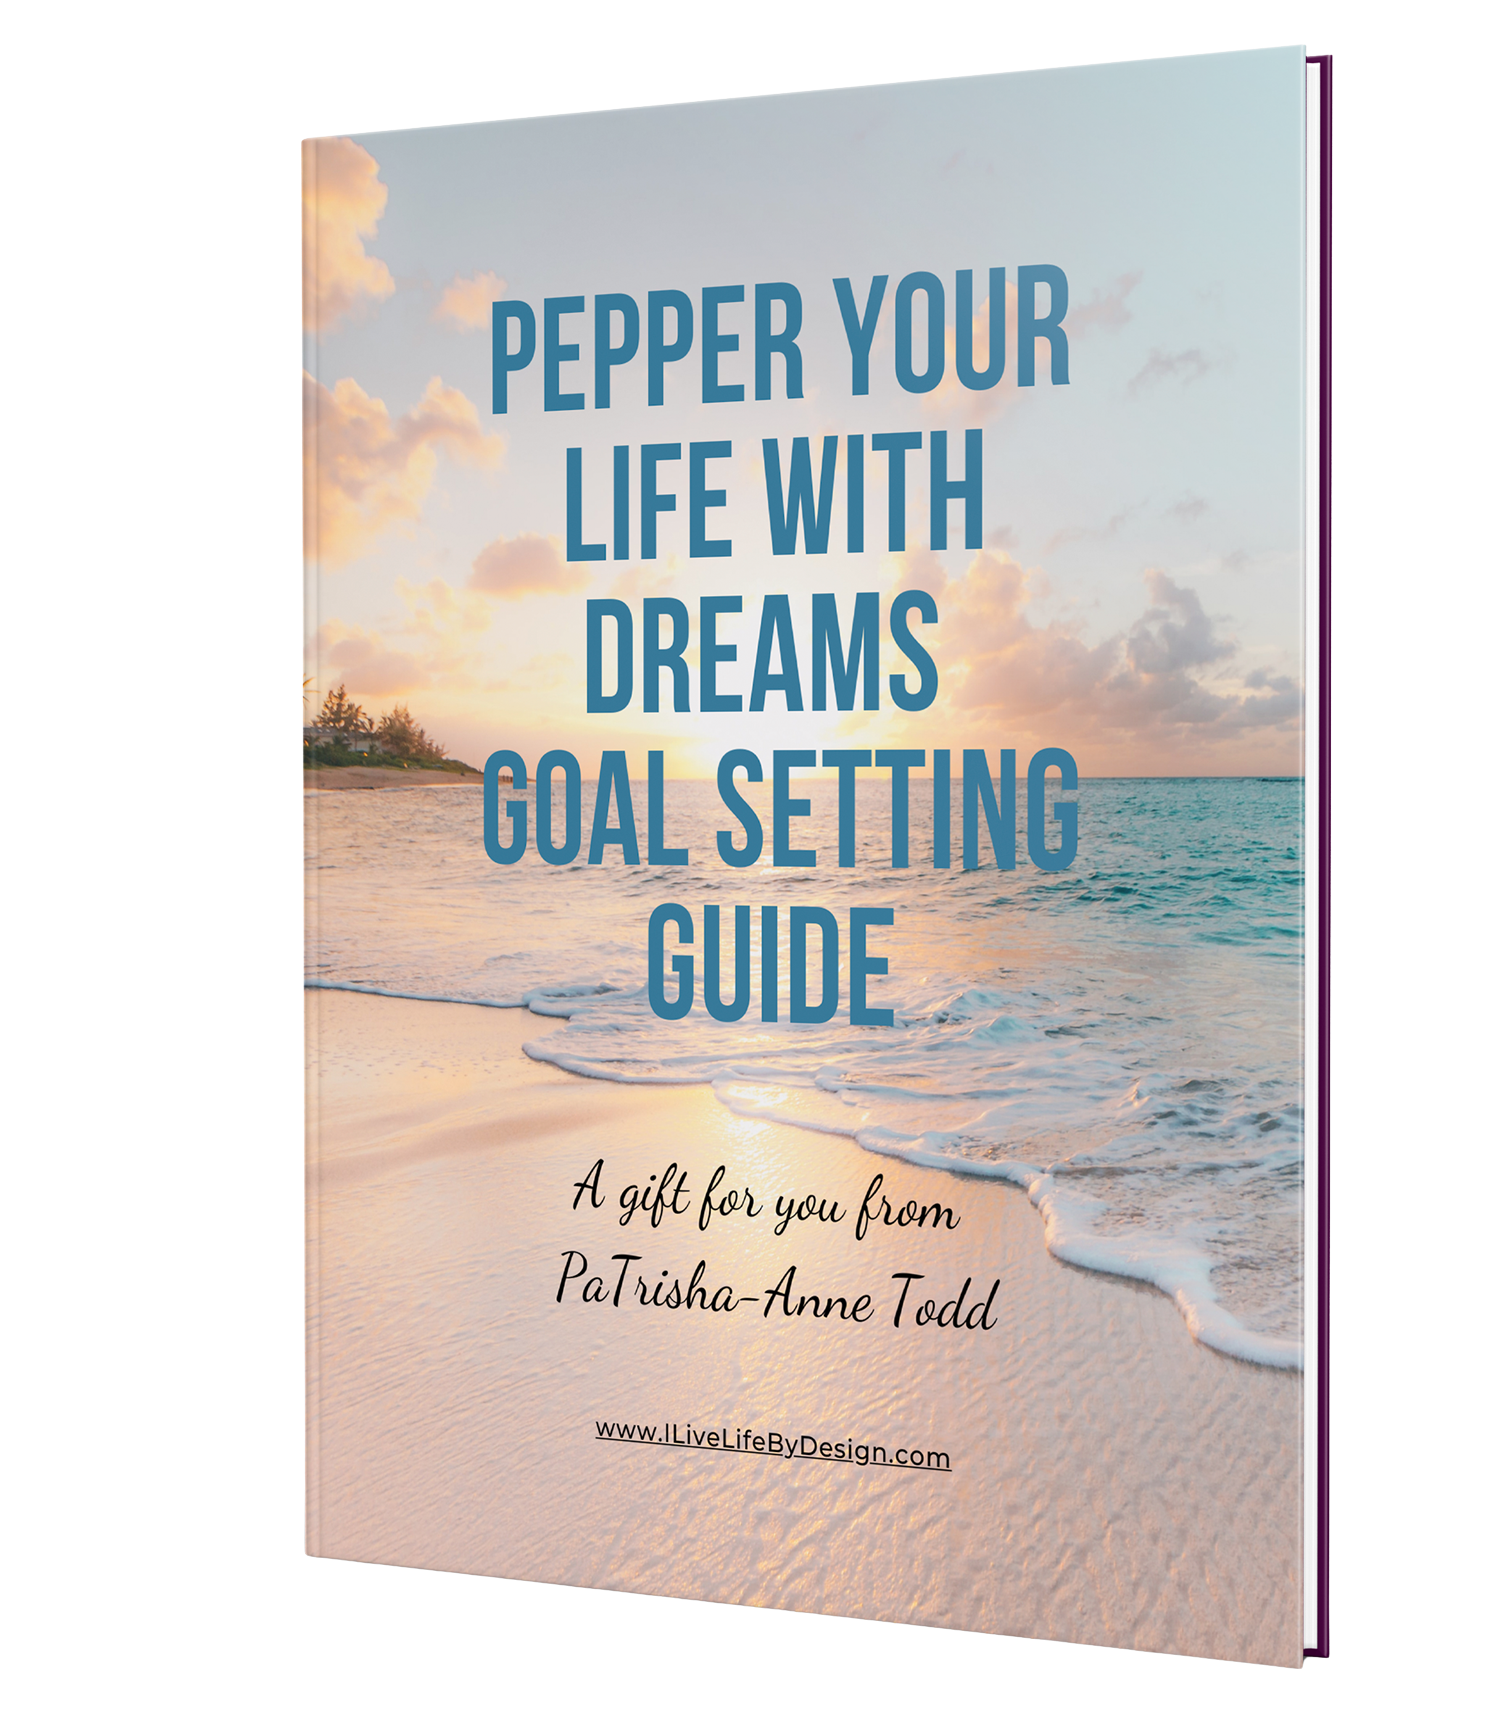 Pepper Your Life with Dreams Goal Setting Guide a GIFT from Master Coach and Trainer, PaTrisha-Anne Todd at www.CoachingLeadsToSuccess.com